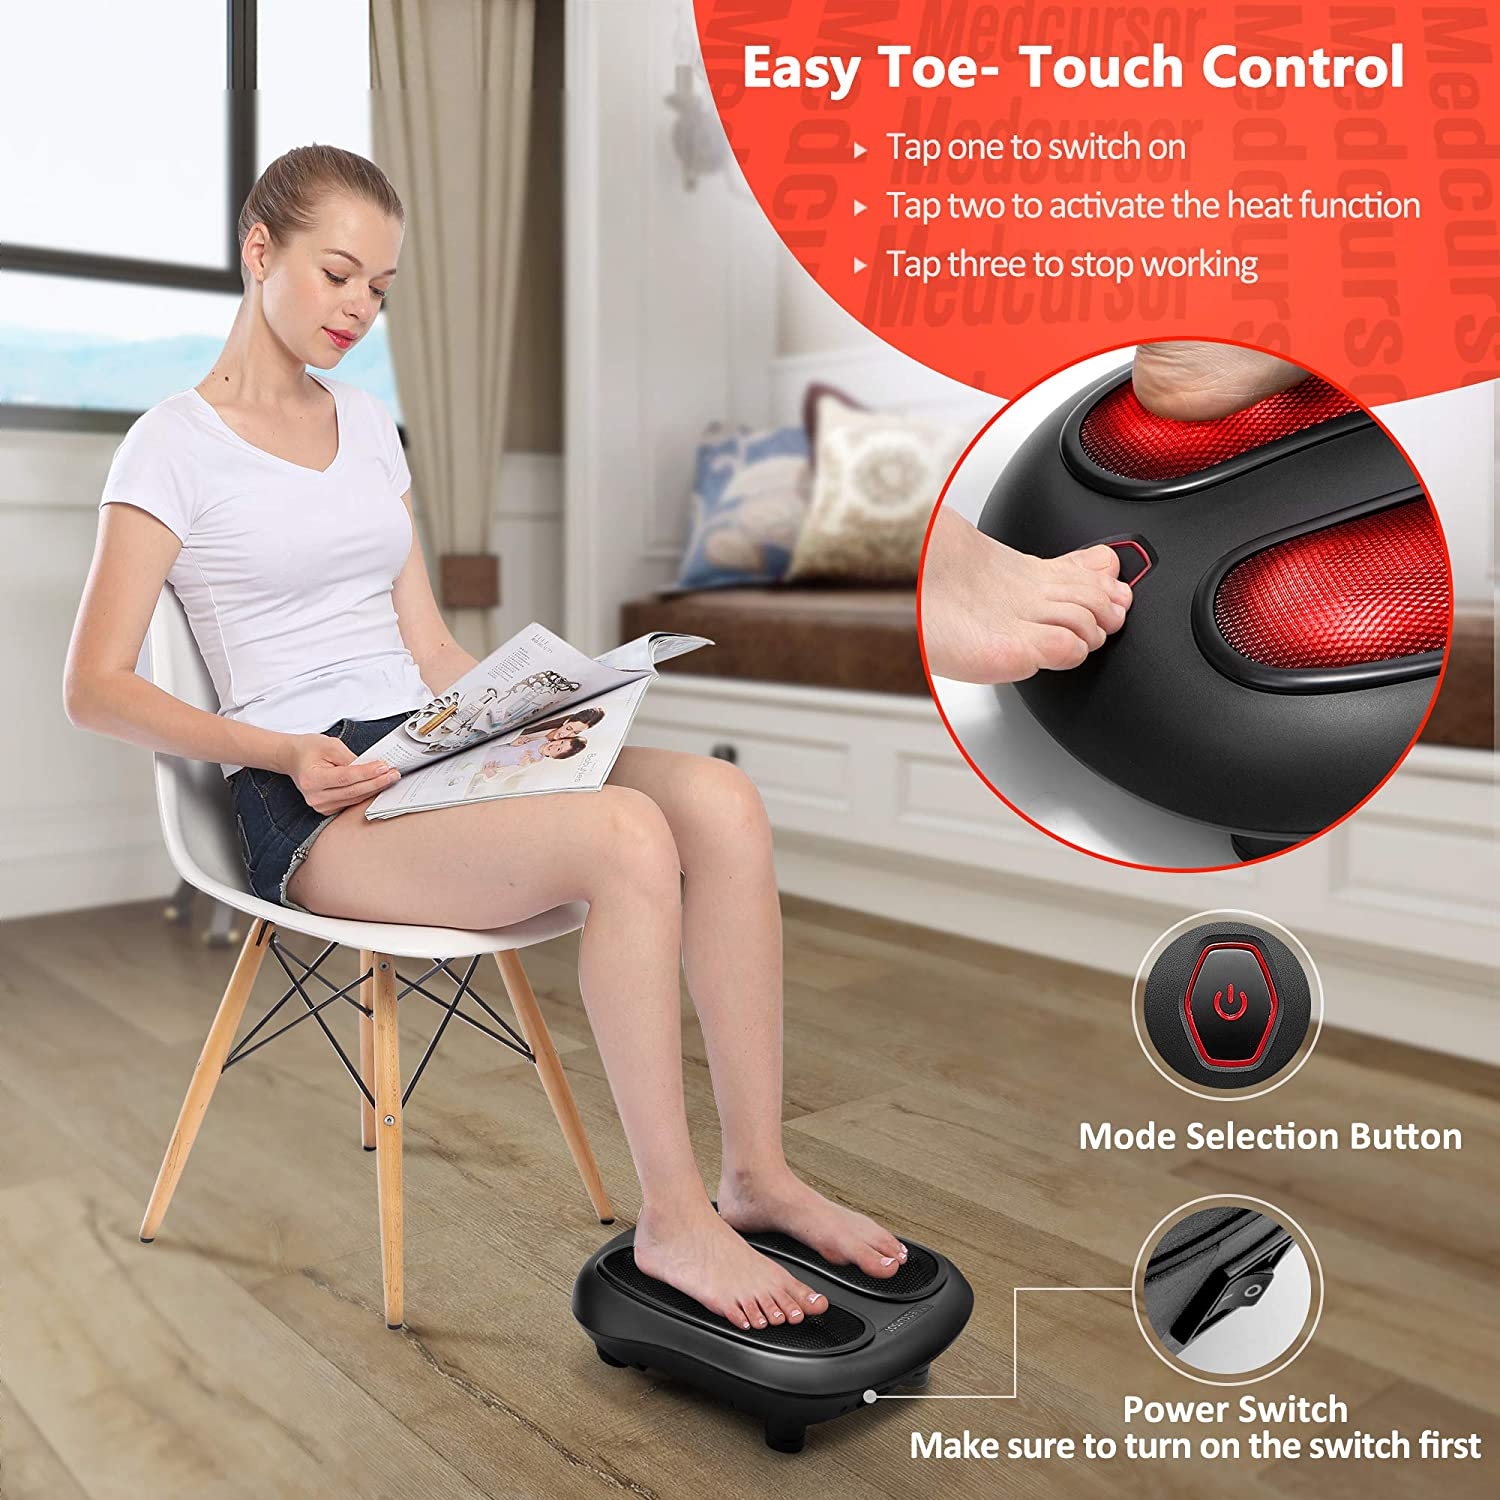 Amazon.com: Medcursor Shiatsu Foot Massager with Built-in Soothing Heat  Function, Electric Deep Kneading Foot Massage Machine, Muscle Pain Relief,  Home and Office Use, Black: Health & Personal Care